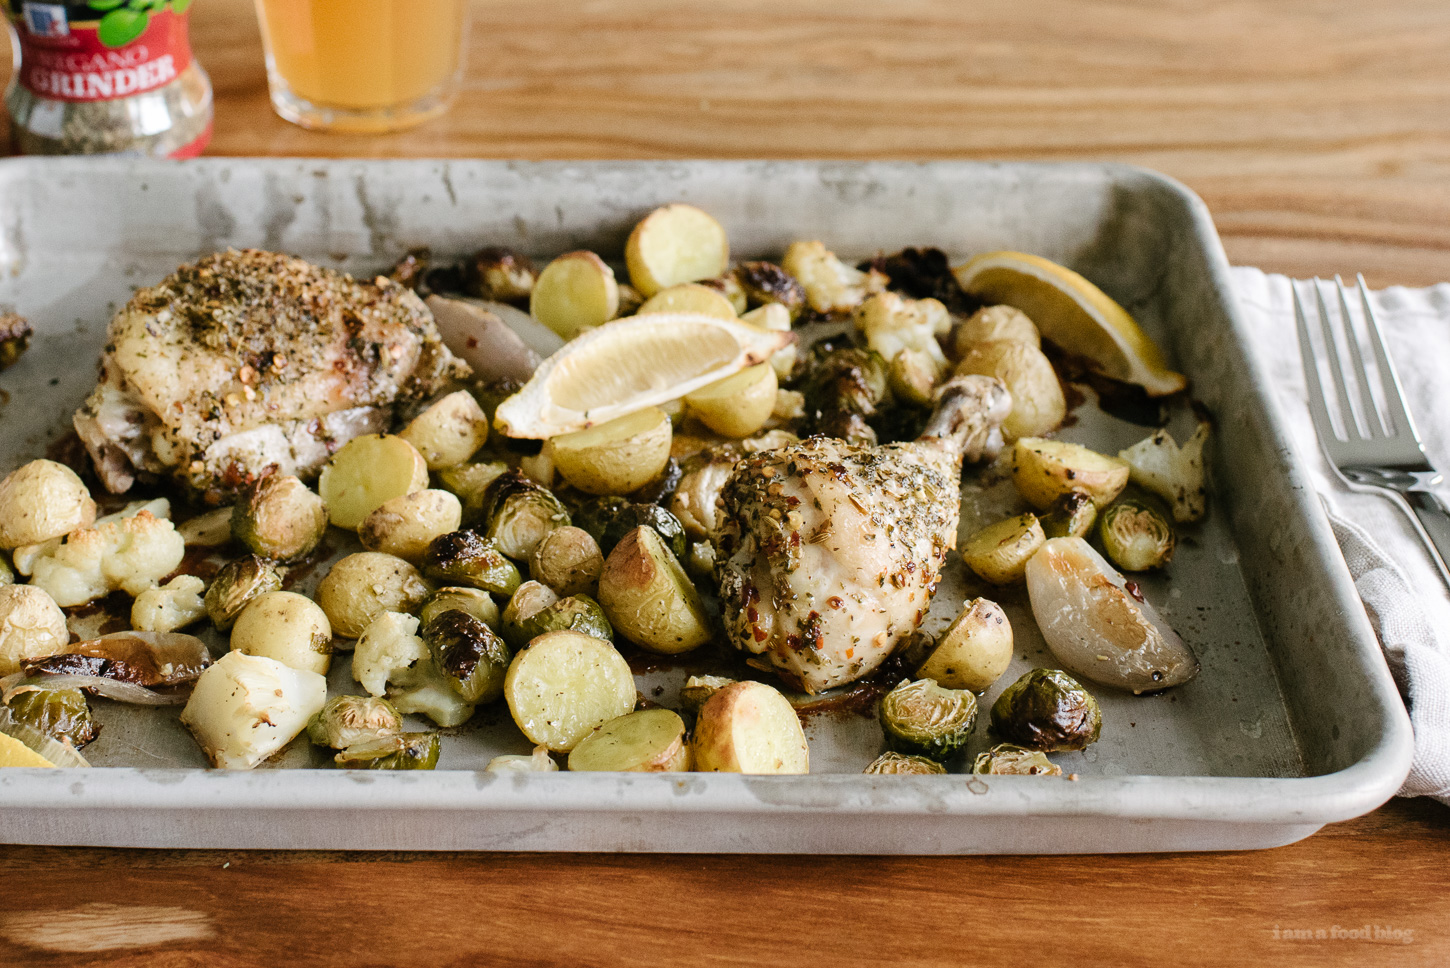 Herb Crusted Roasted Chicken Sheet Pan Supper - www.iamafoodblog.com